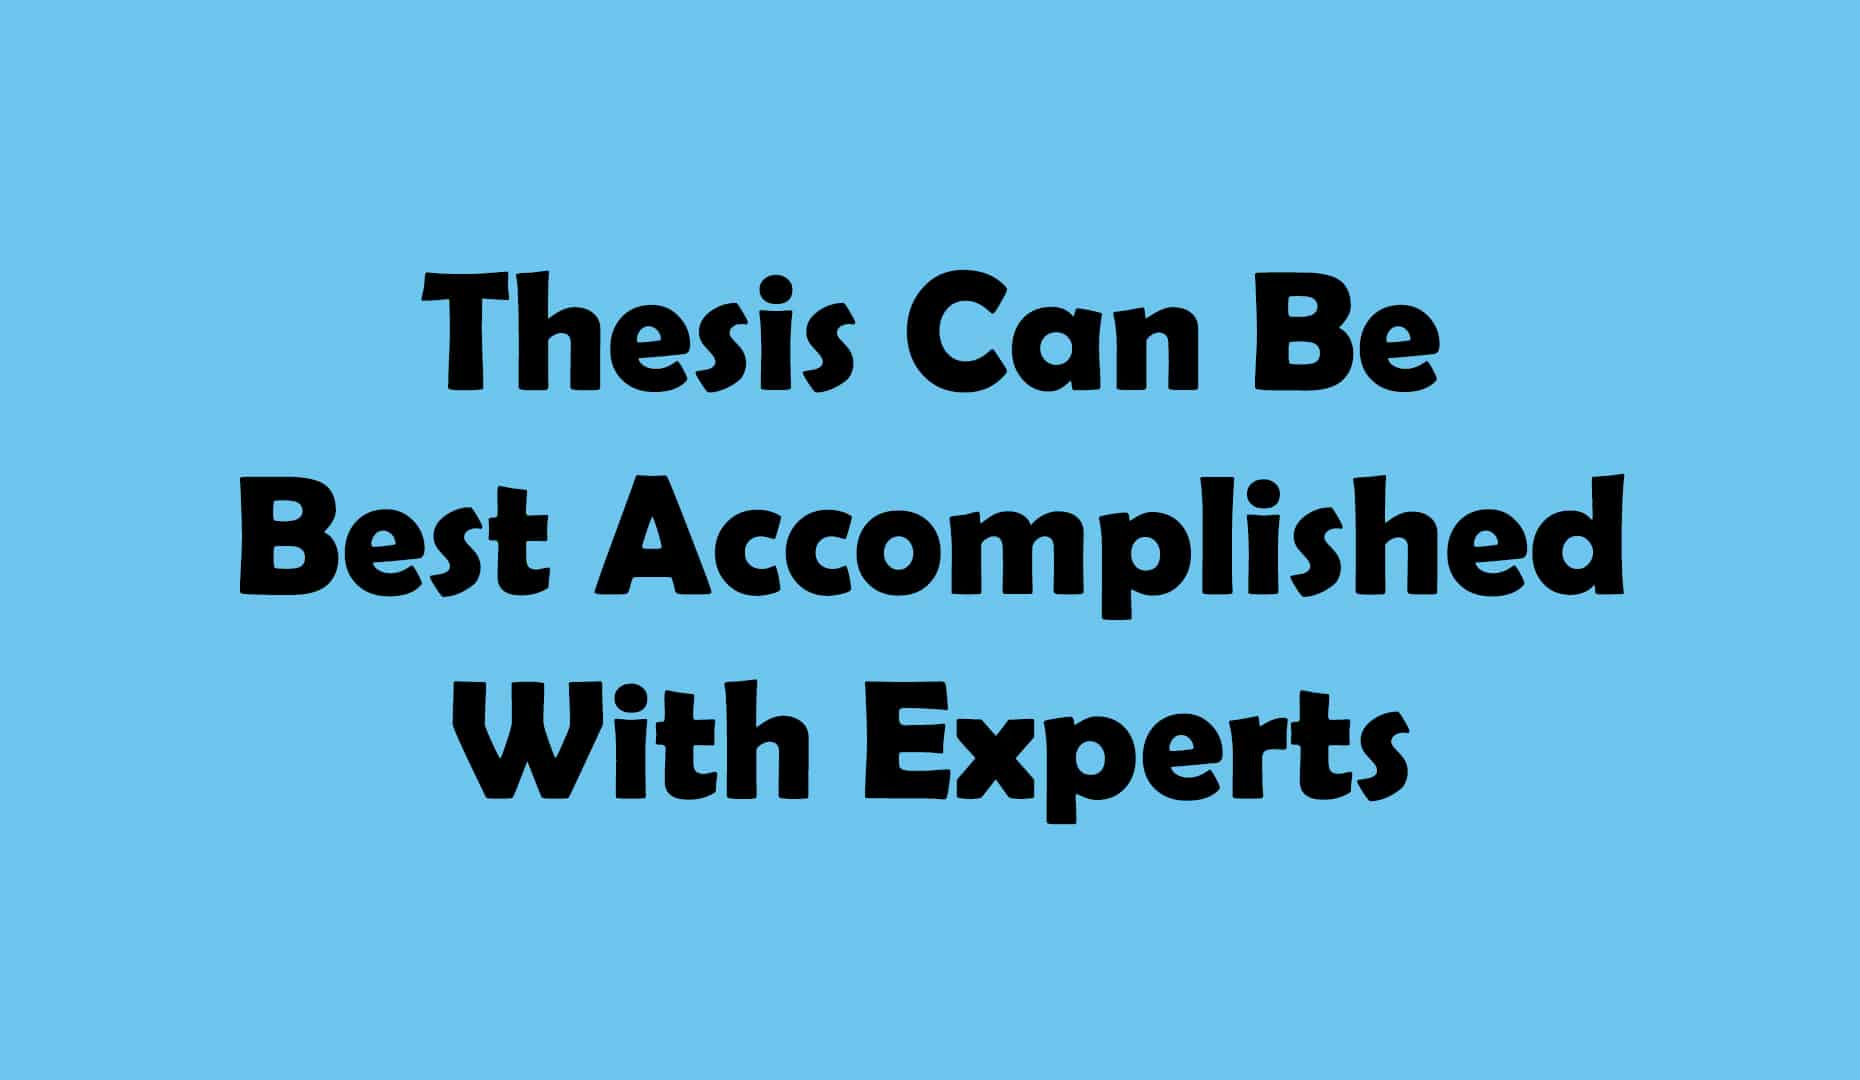 Thesis Can Be Best Accomplished With Experts